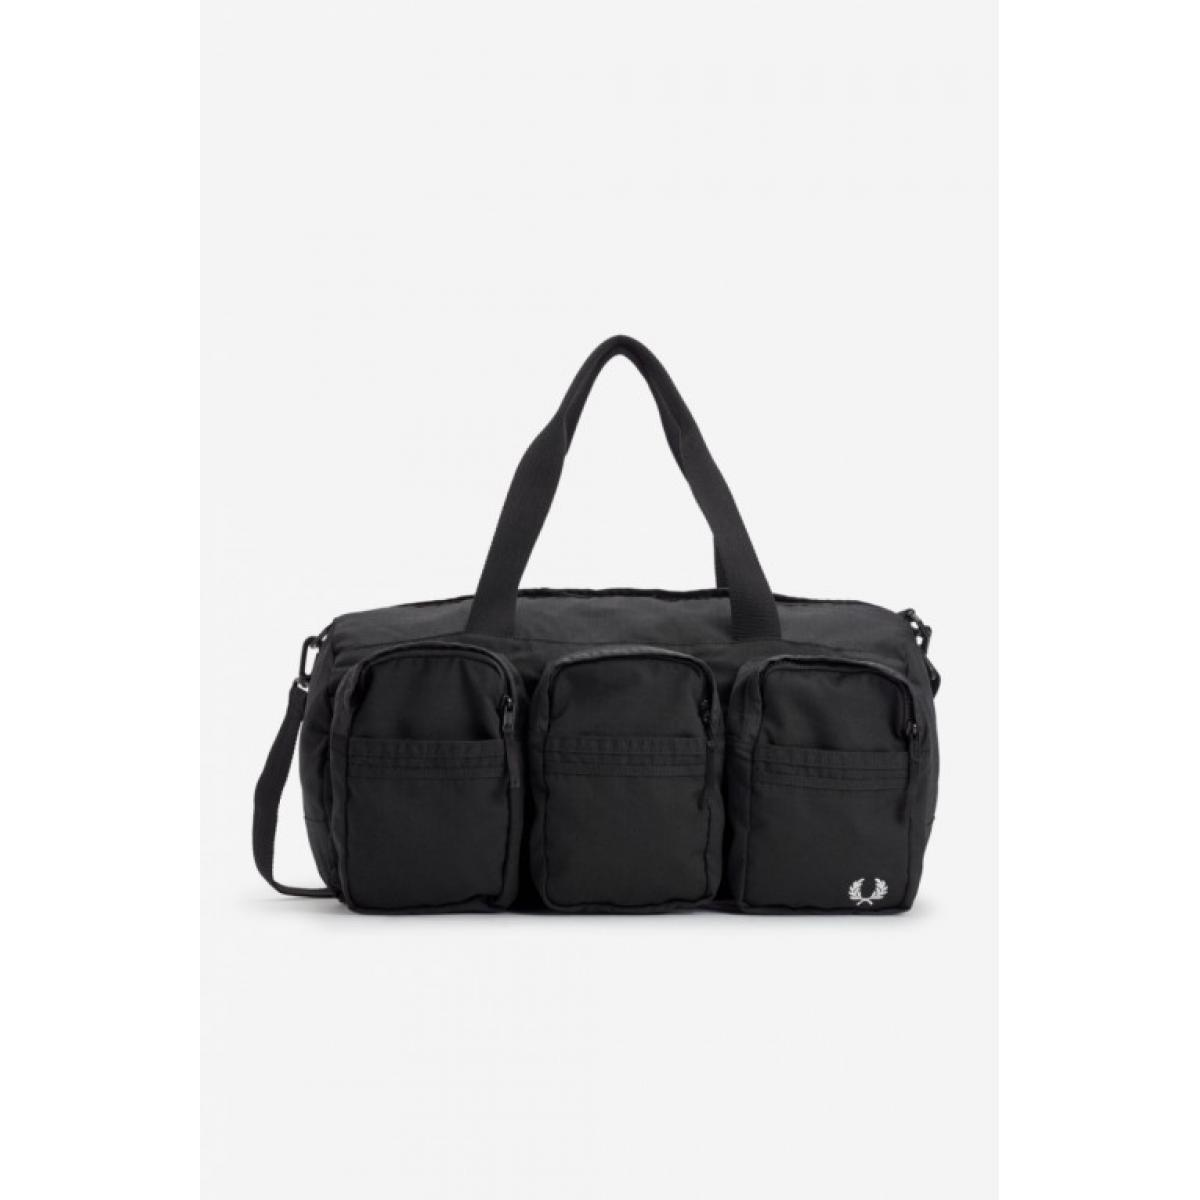 Sac de voyage noir Multipoches - Fred Perry Fred Perry